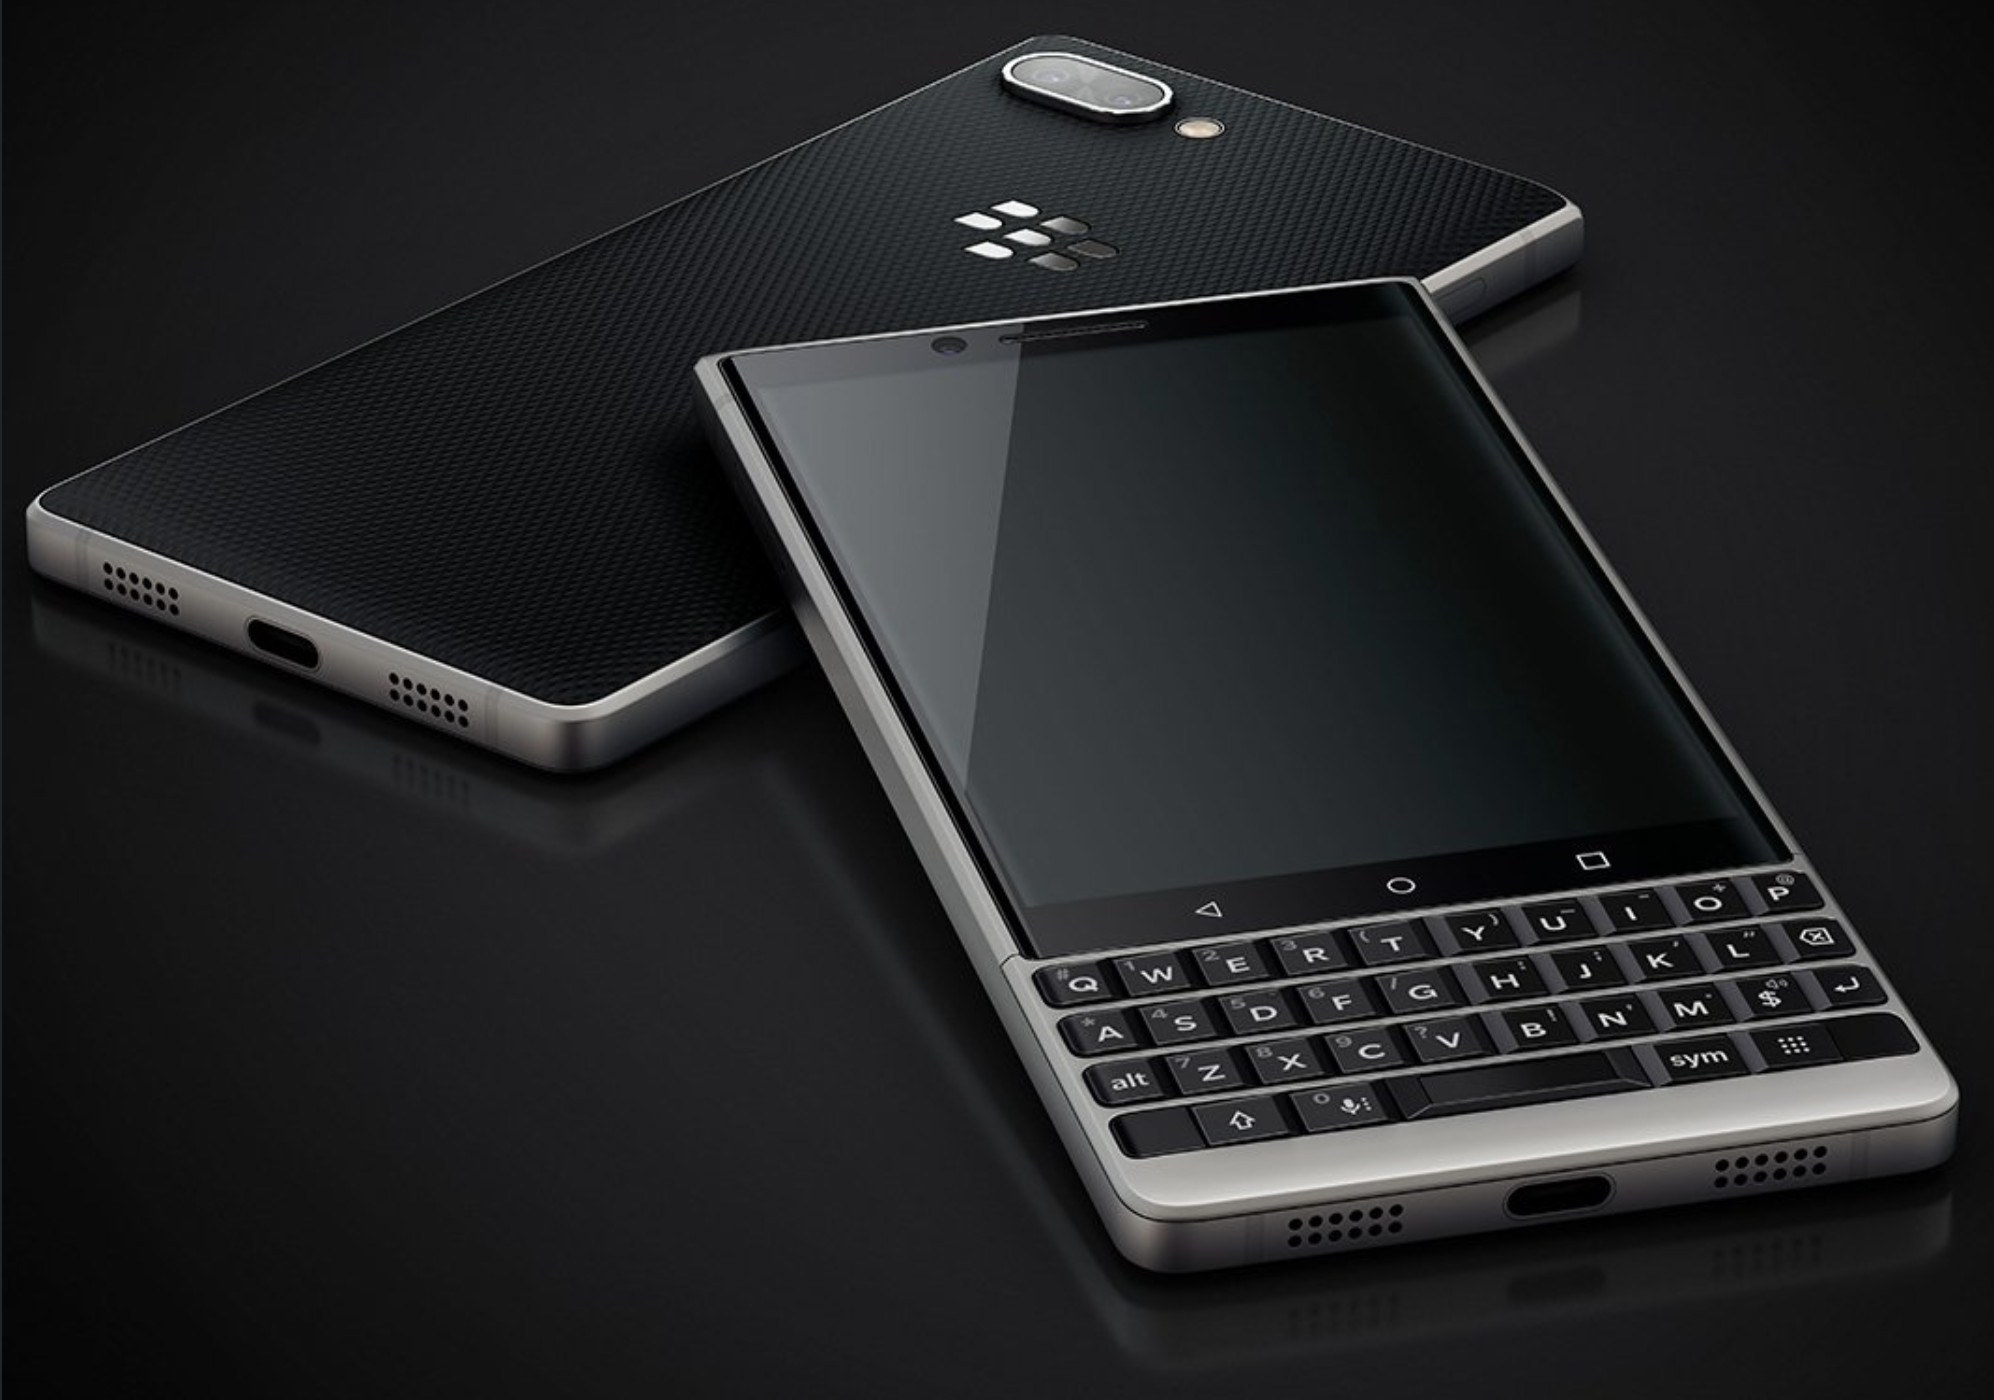 This is the BlackBerry Key2, unbelievable press images leak to show all